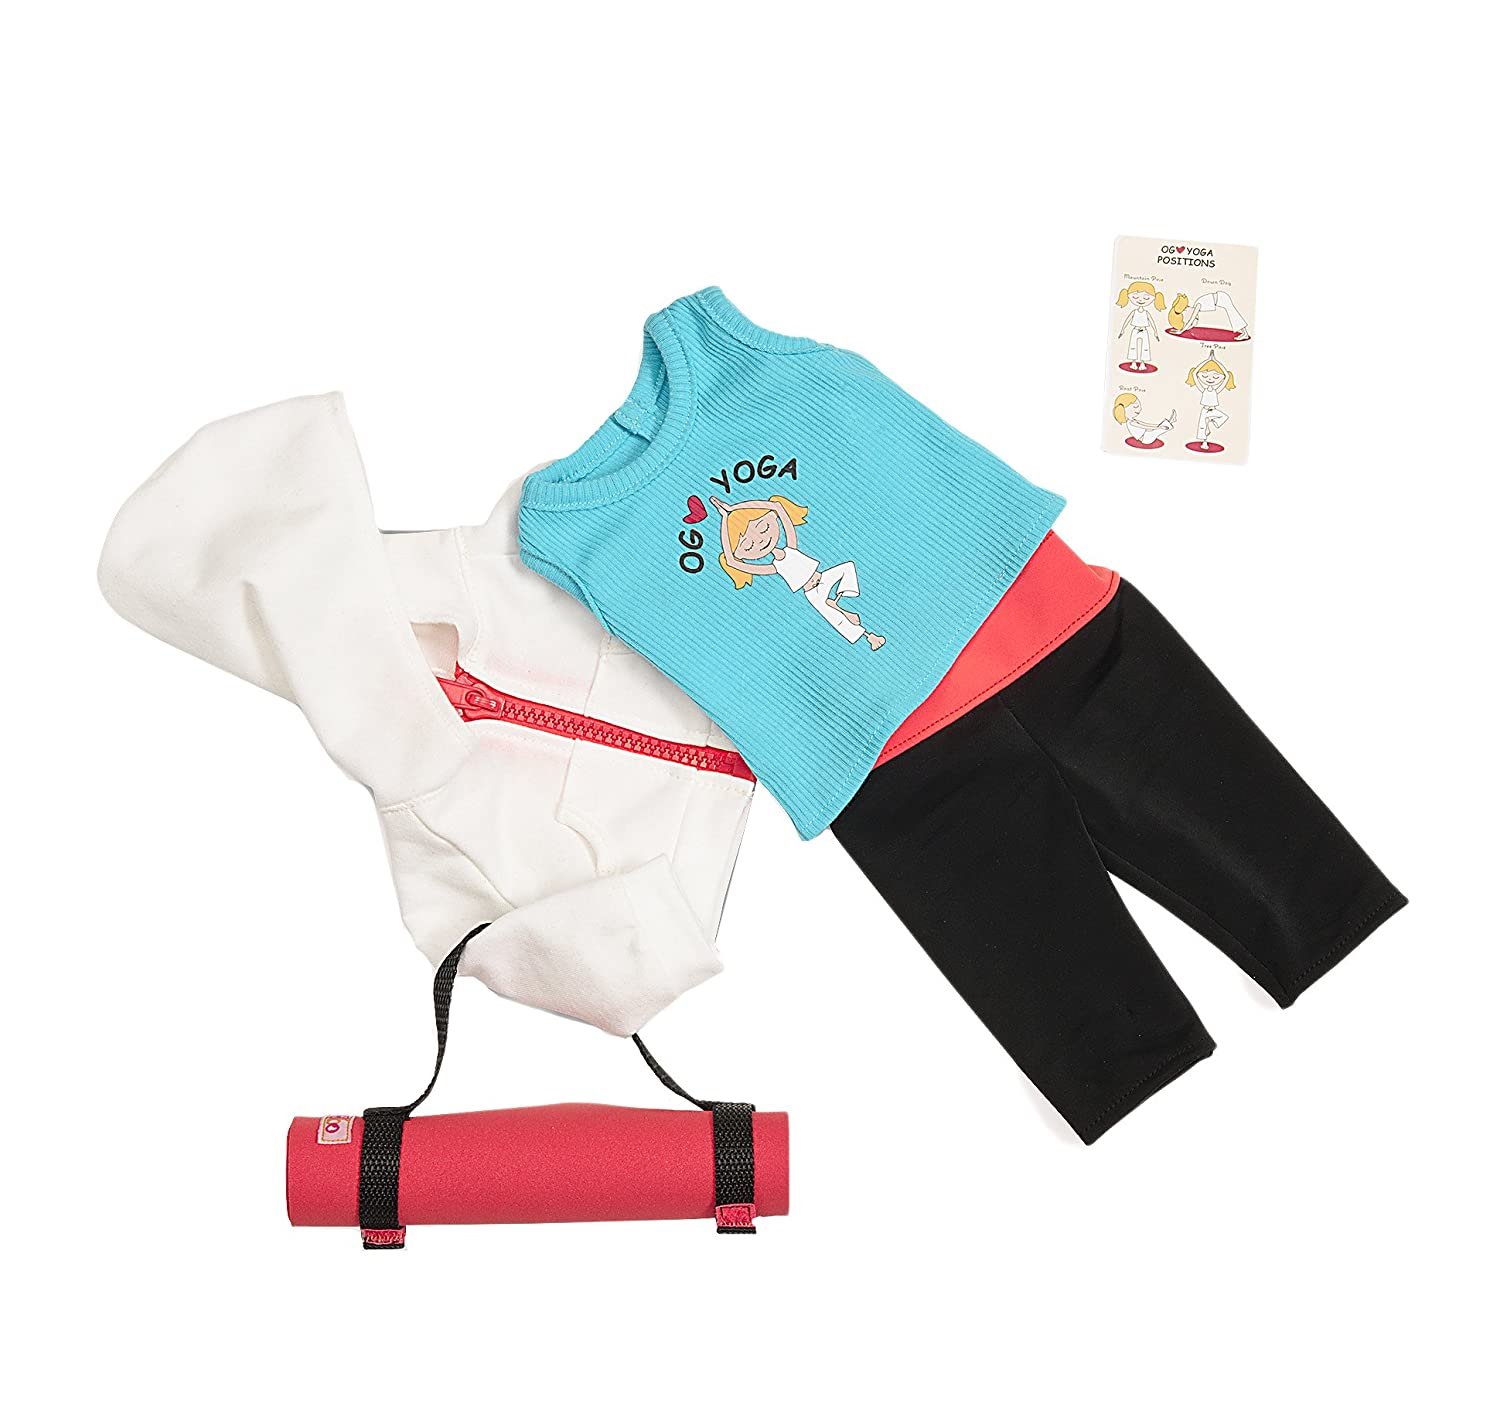 """Our Generation Ommm My Way to Yoga Outfit Compatible with 18/"""" Dolls SG/_B00FZ0UH4E/_US"""